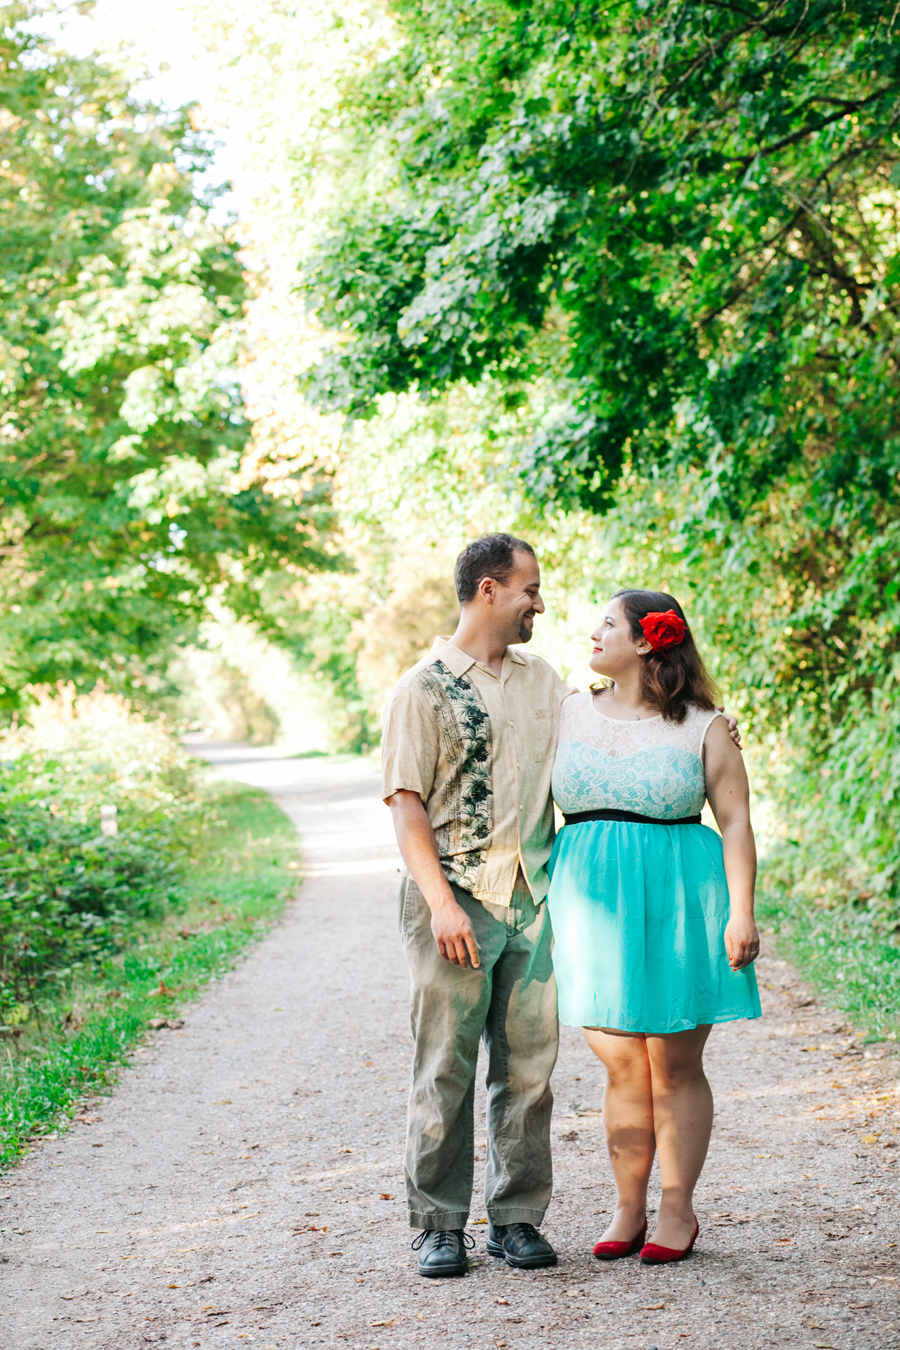 002-bellingham-engagement-photographer-katheryn-moran-photography-boulevard-park.jpg